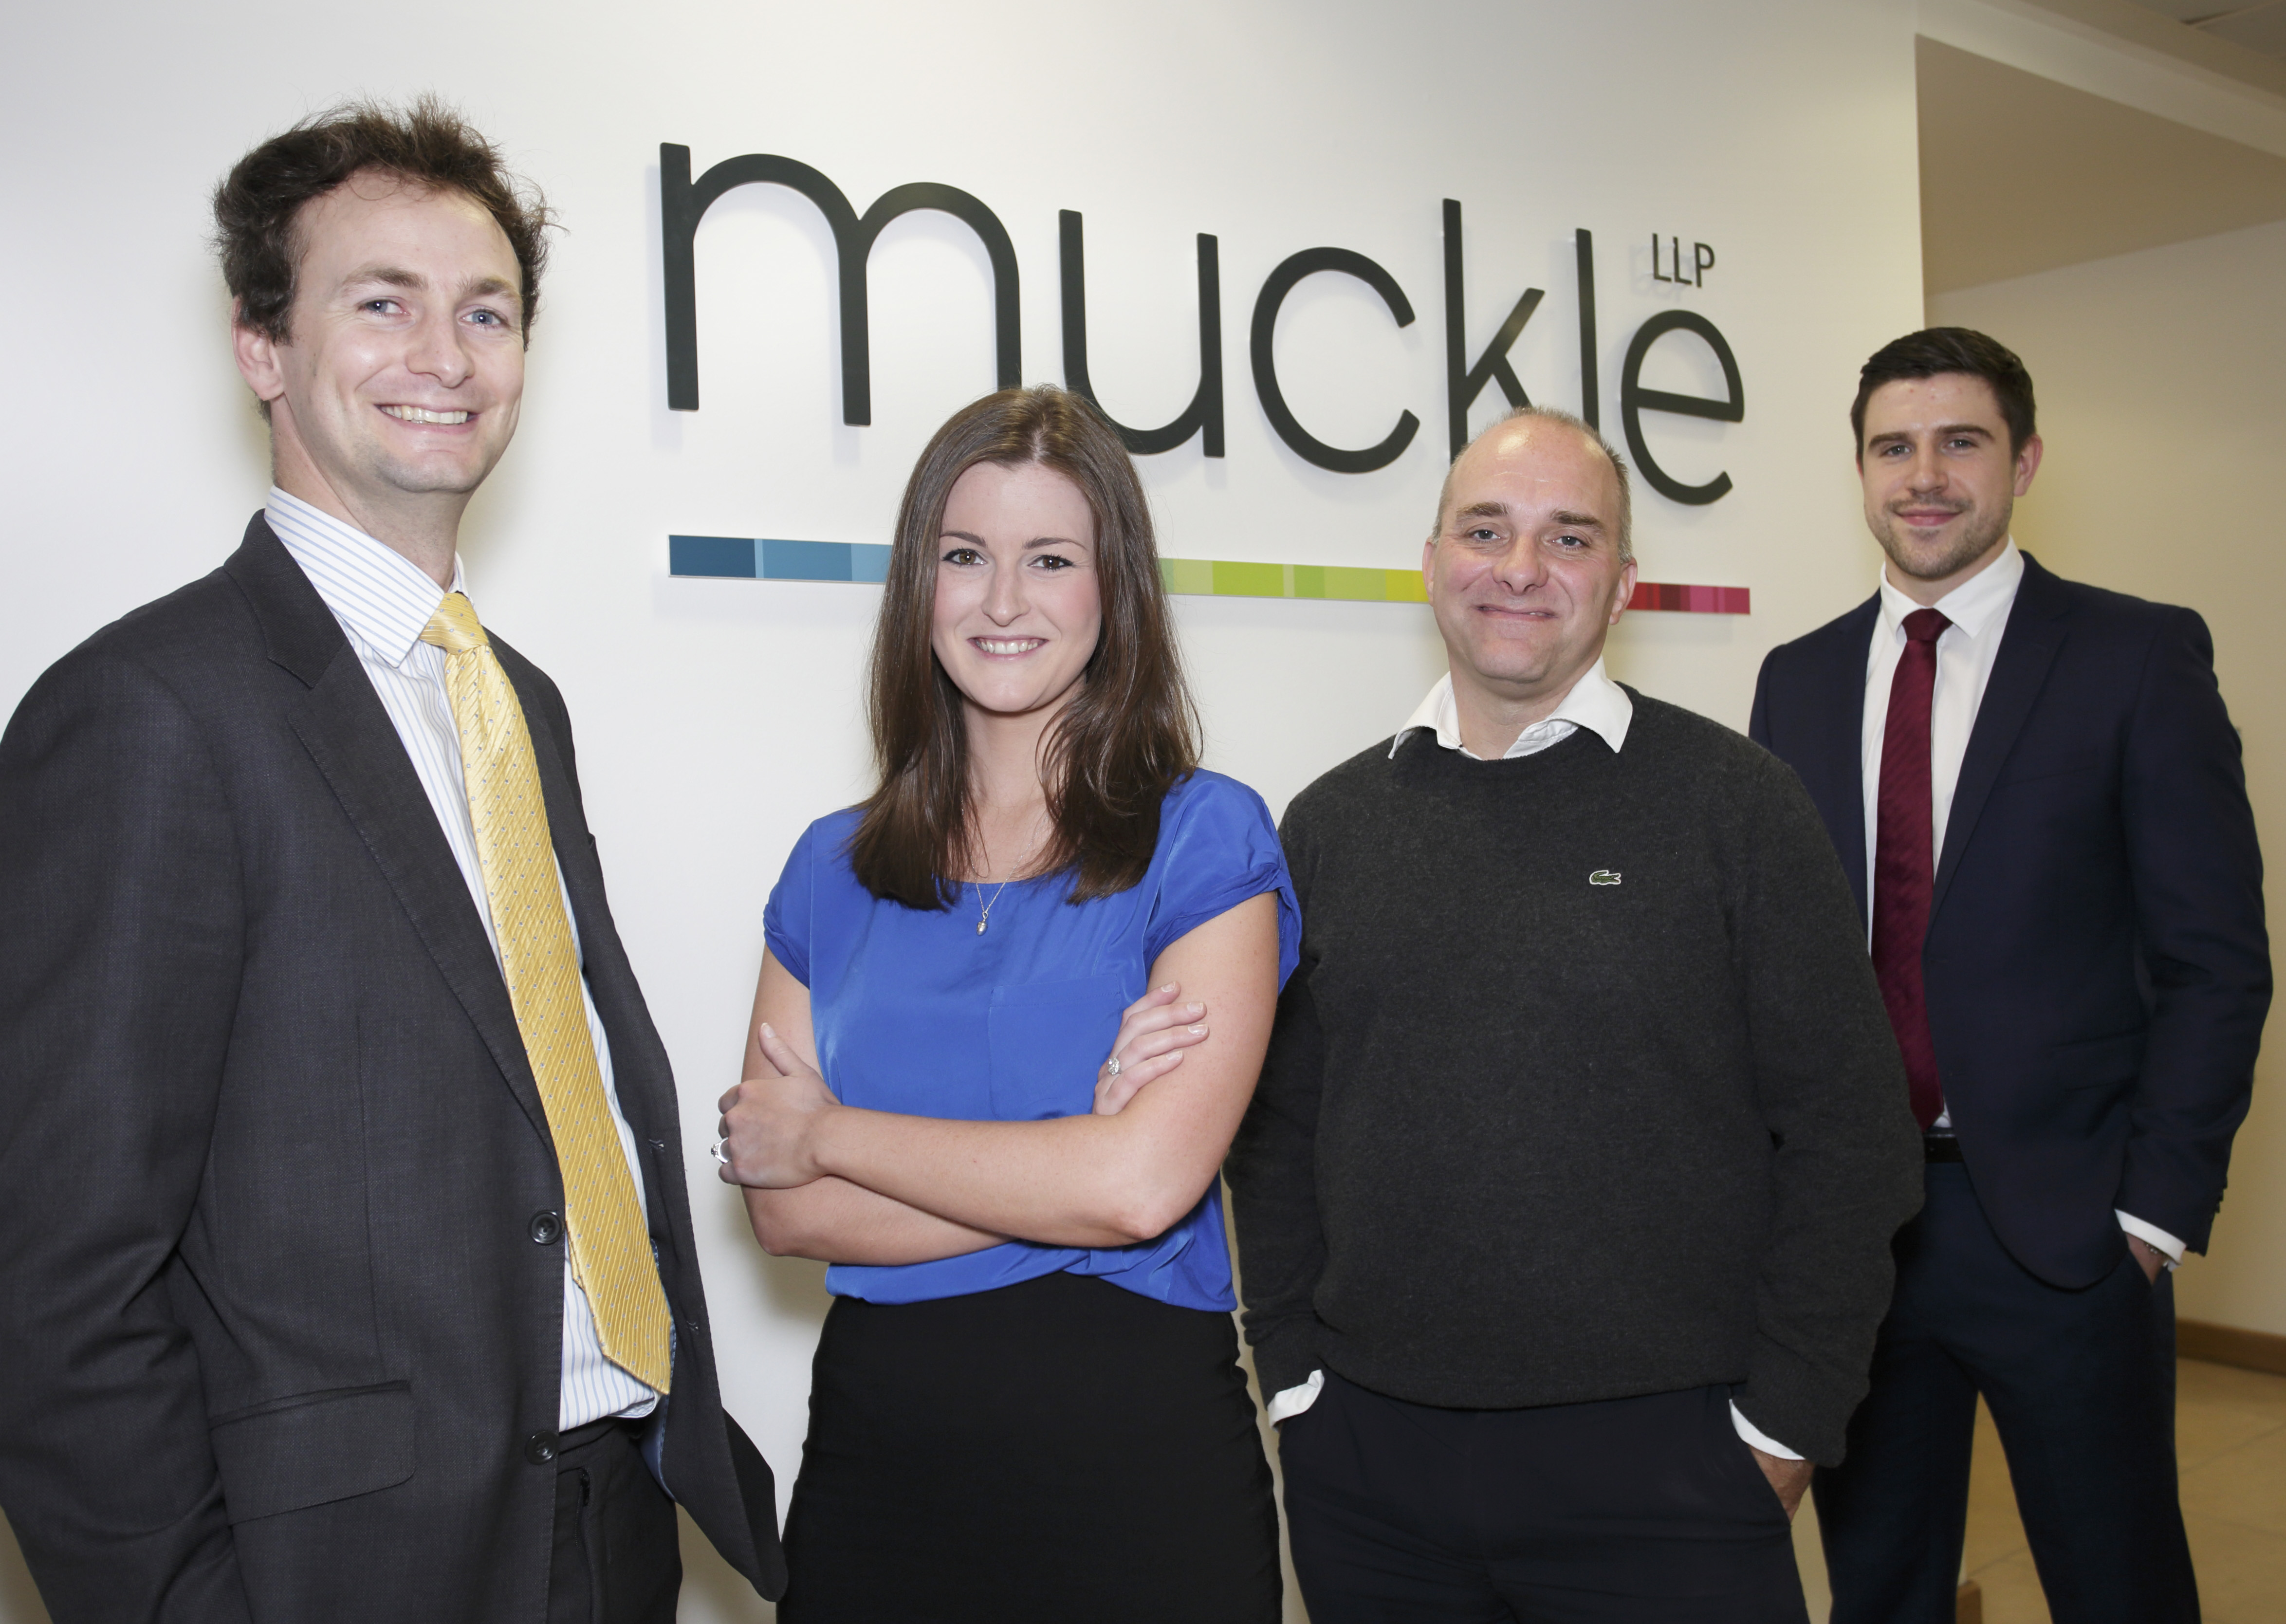 Henry, Beth, Jason and Tom from Muckle LLP